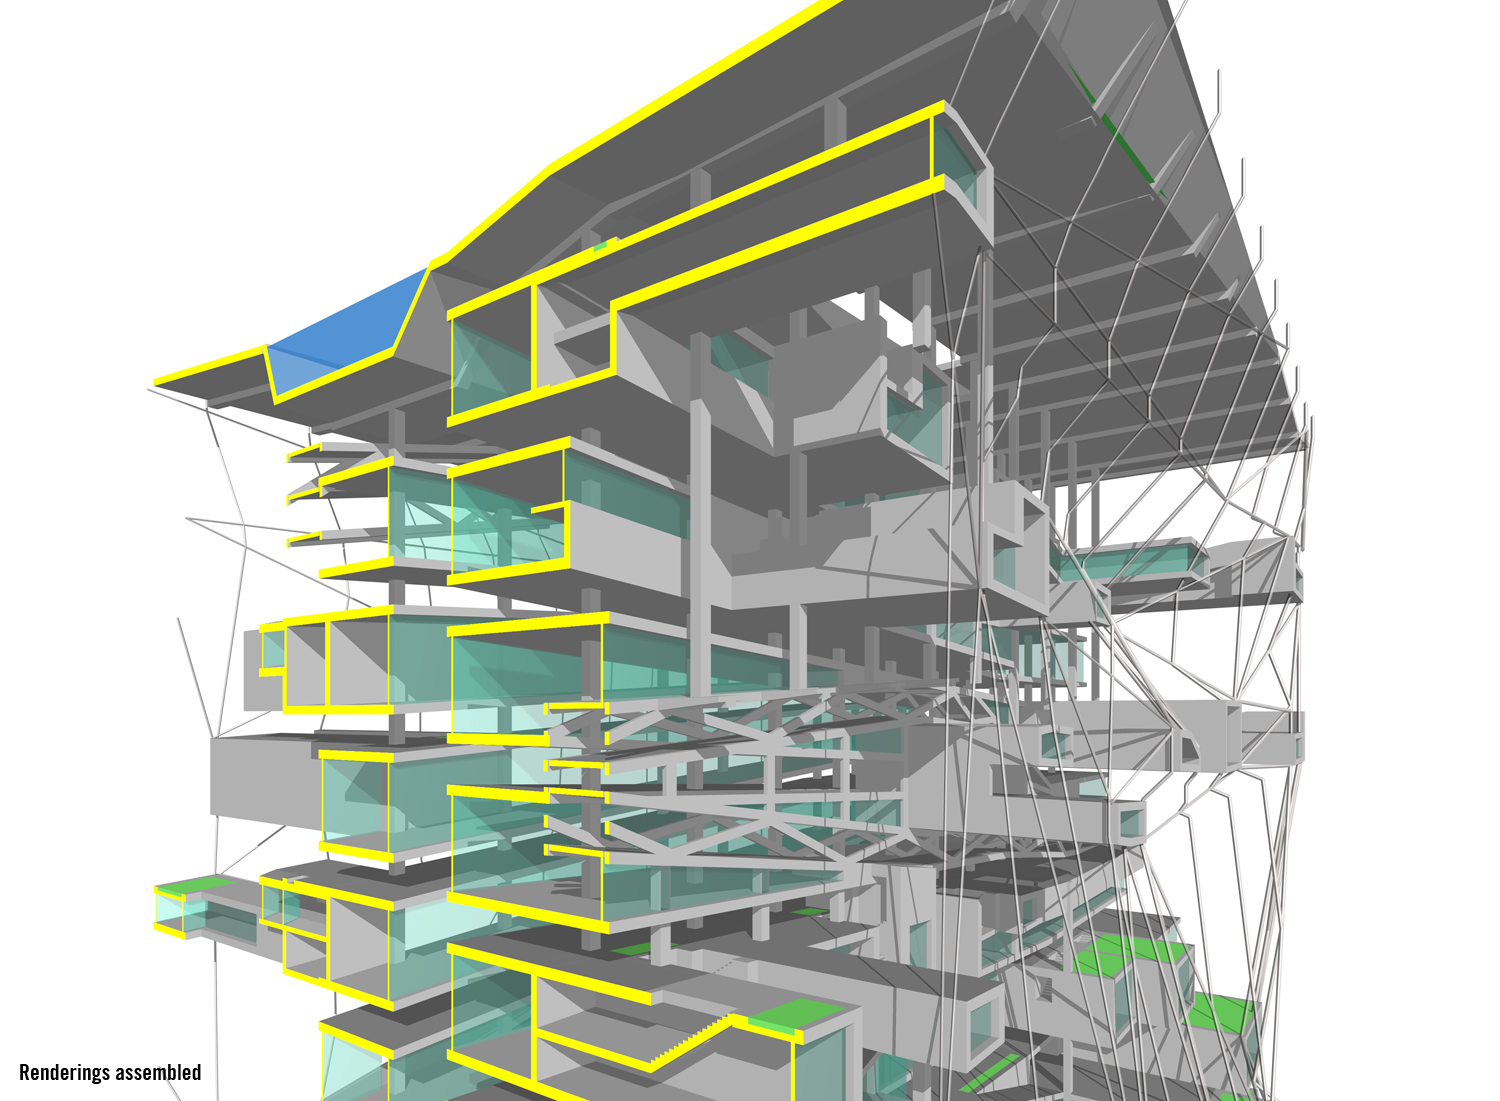 architecture section diagram deh p3600 wiring over drawing ltl architects parktower residential 4 jpg